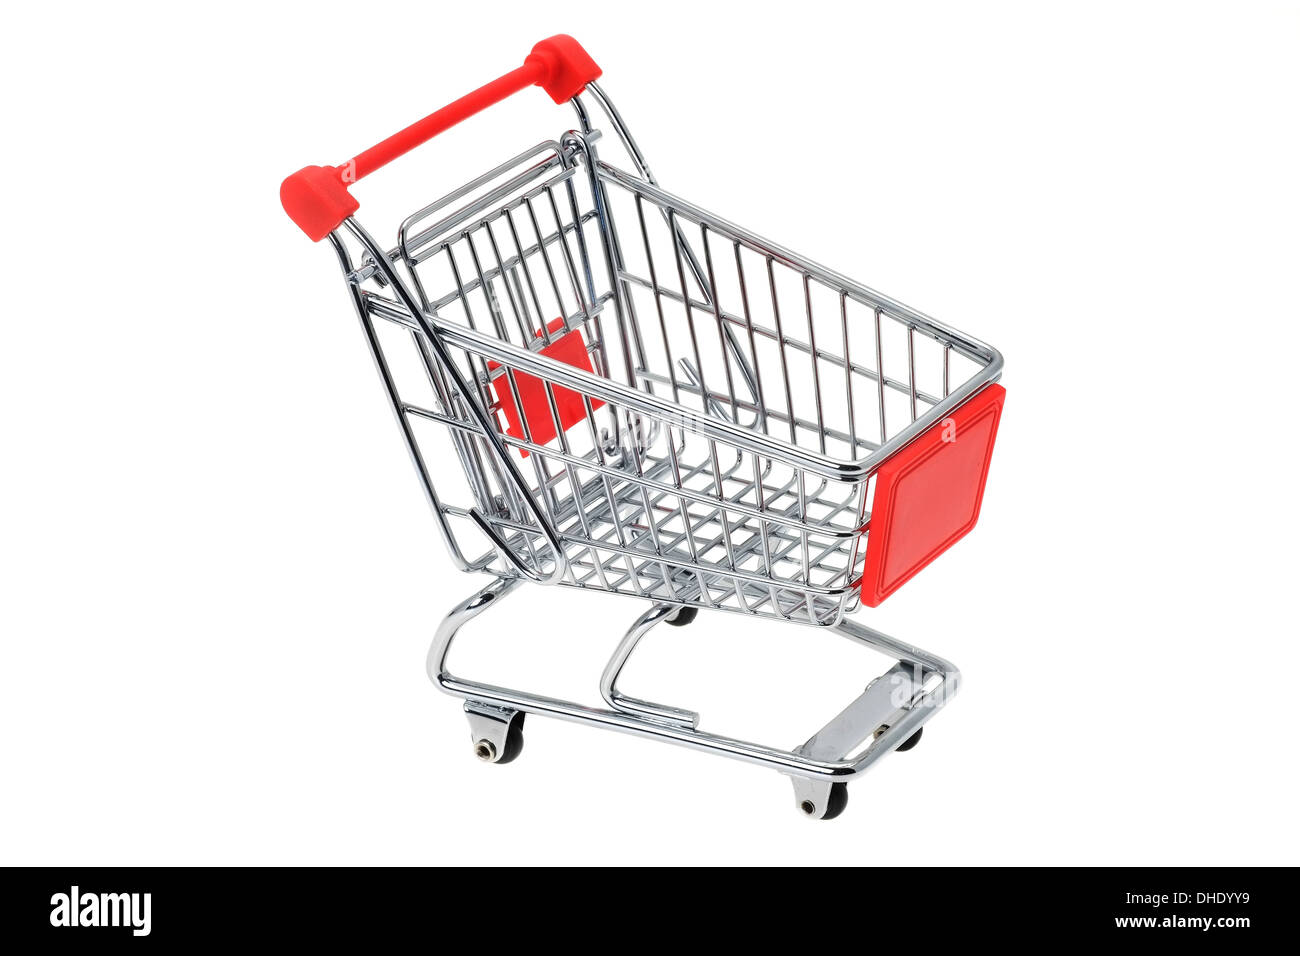 Empty shopping trolley cart - studio shot with a white background - Stock Image